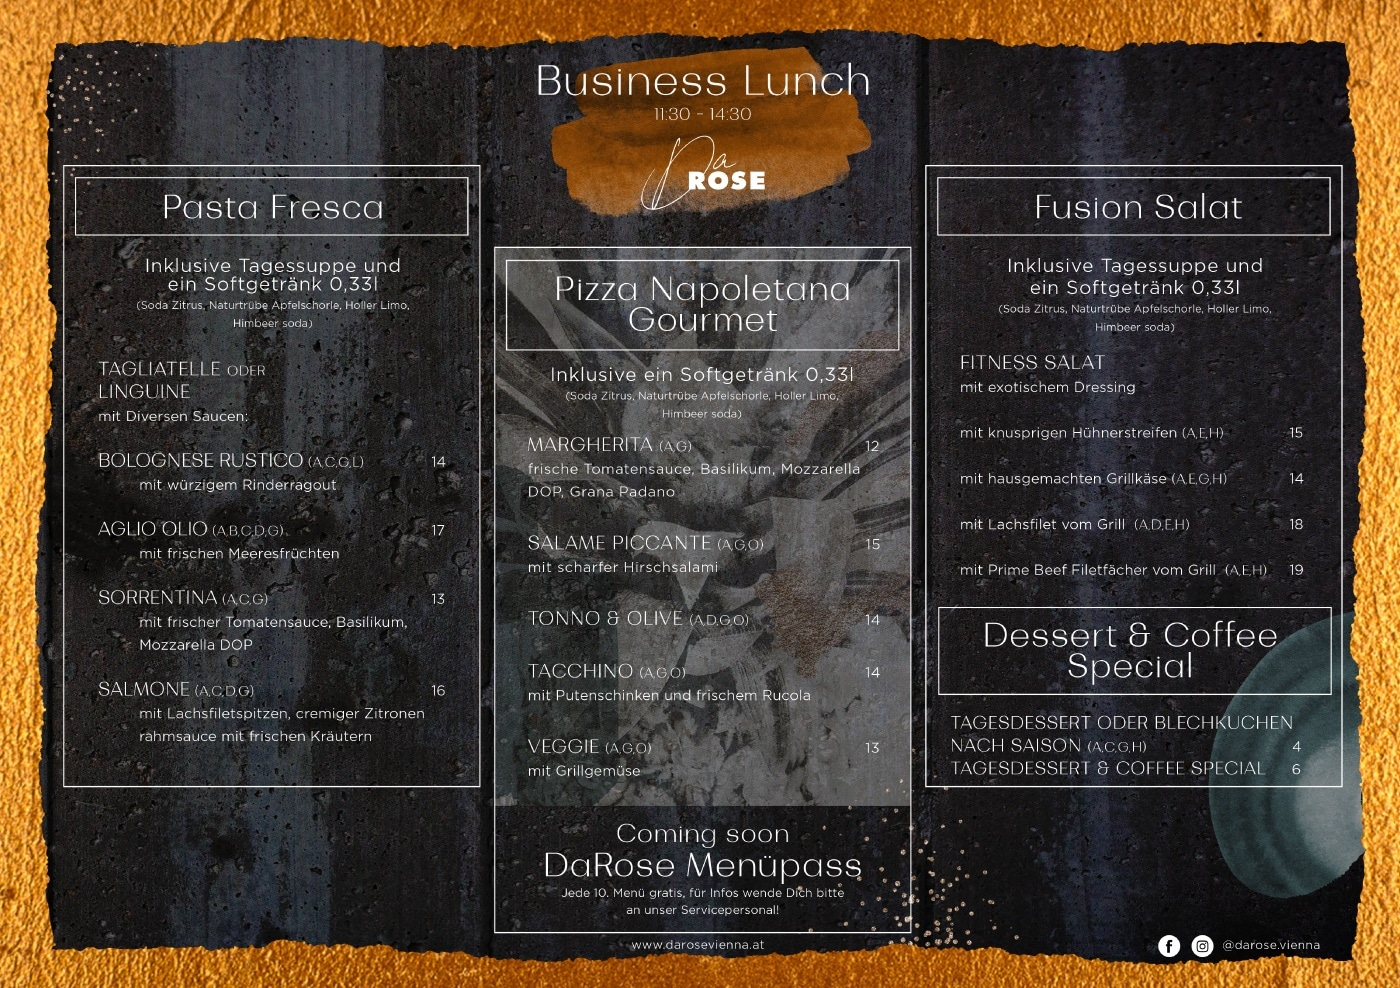 Tages-lunch-flyer-TO-PRINT-2